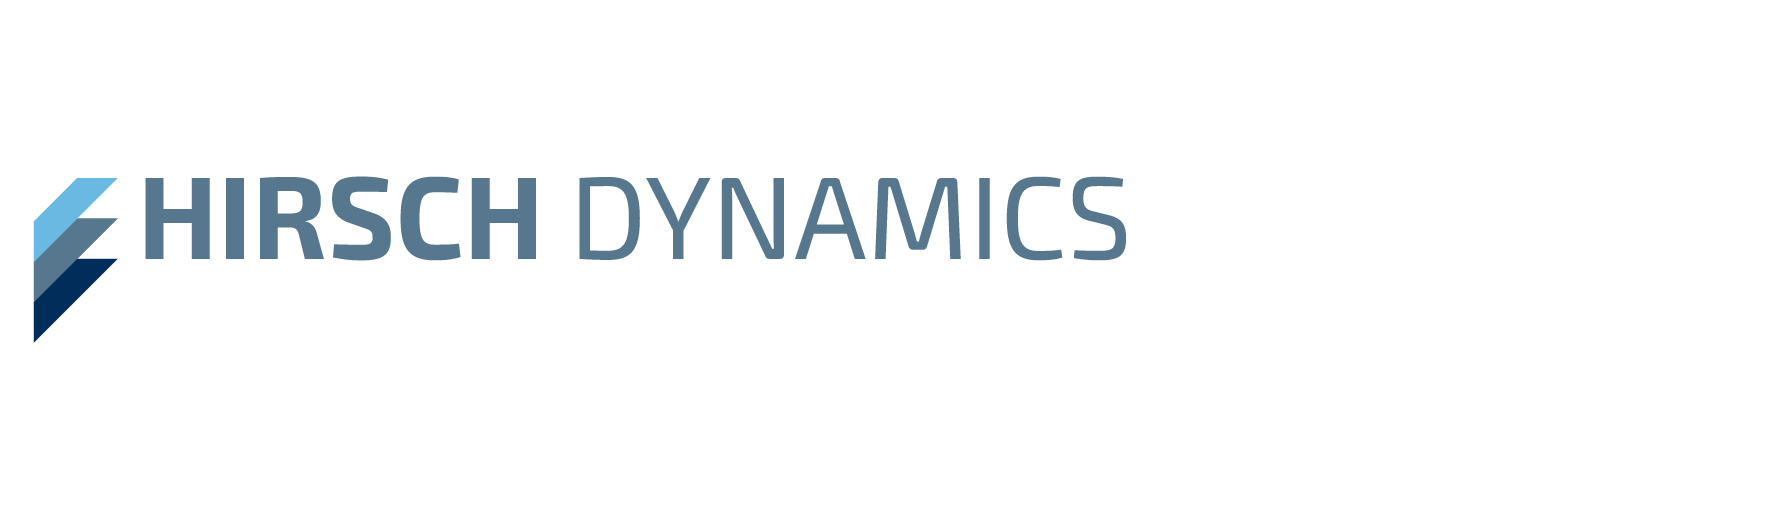 Hirsch Dynamics Medical GmbH